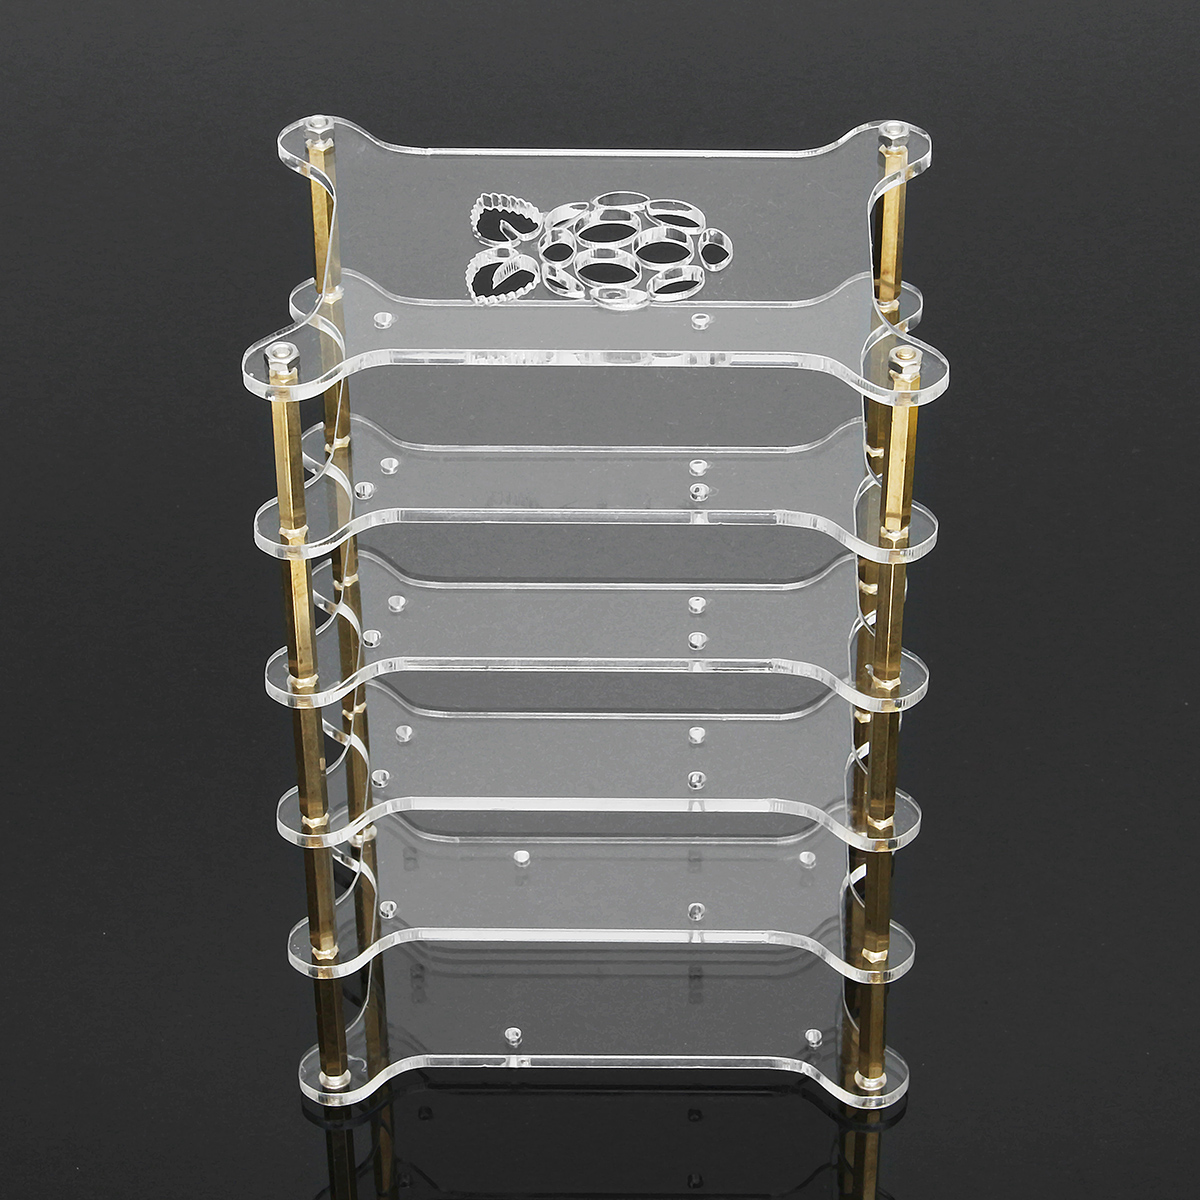 Clear Acrylic 5 Layer Cluster Case Shelf Stack For Raspberry Pi 3/2 B and B+